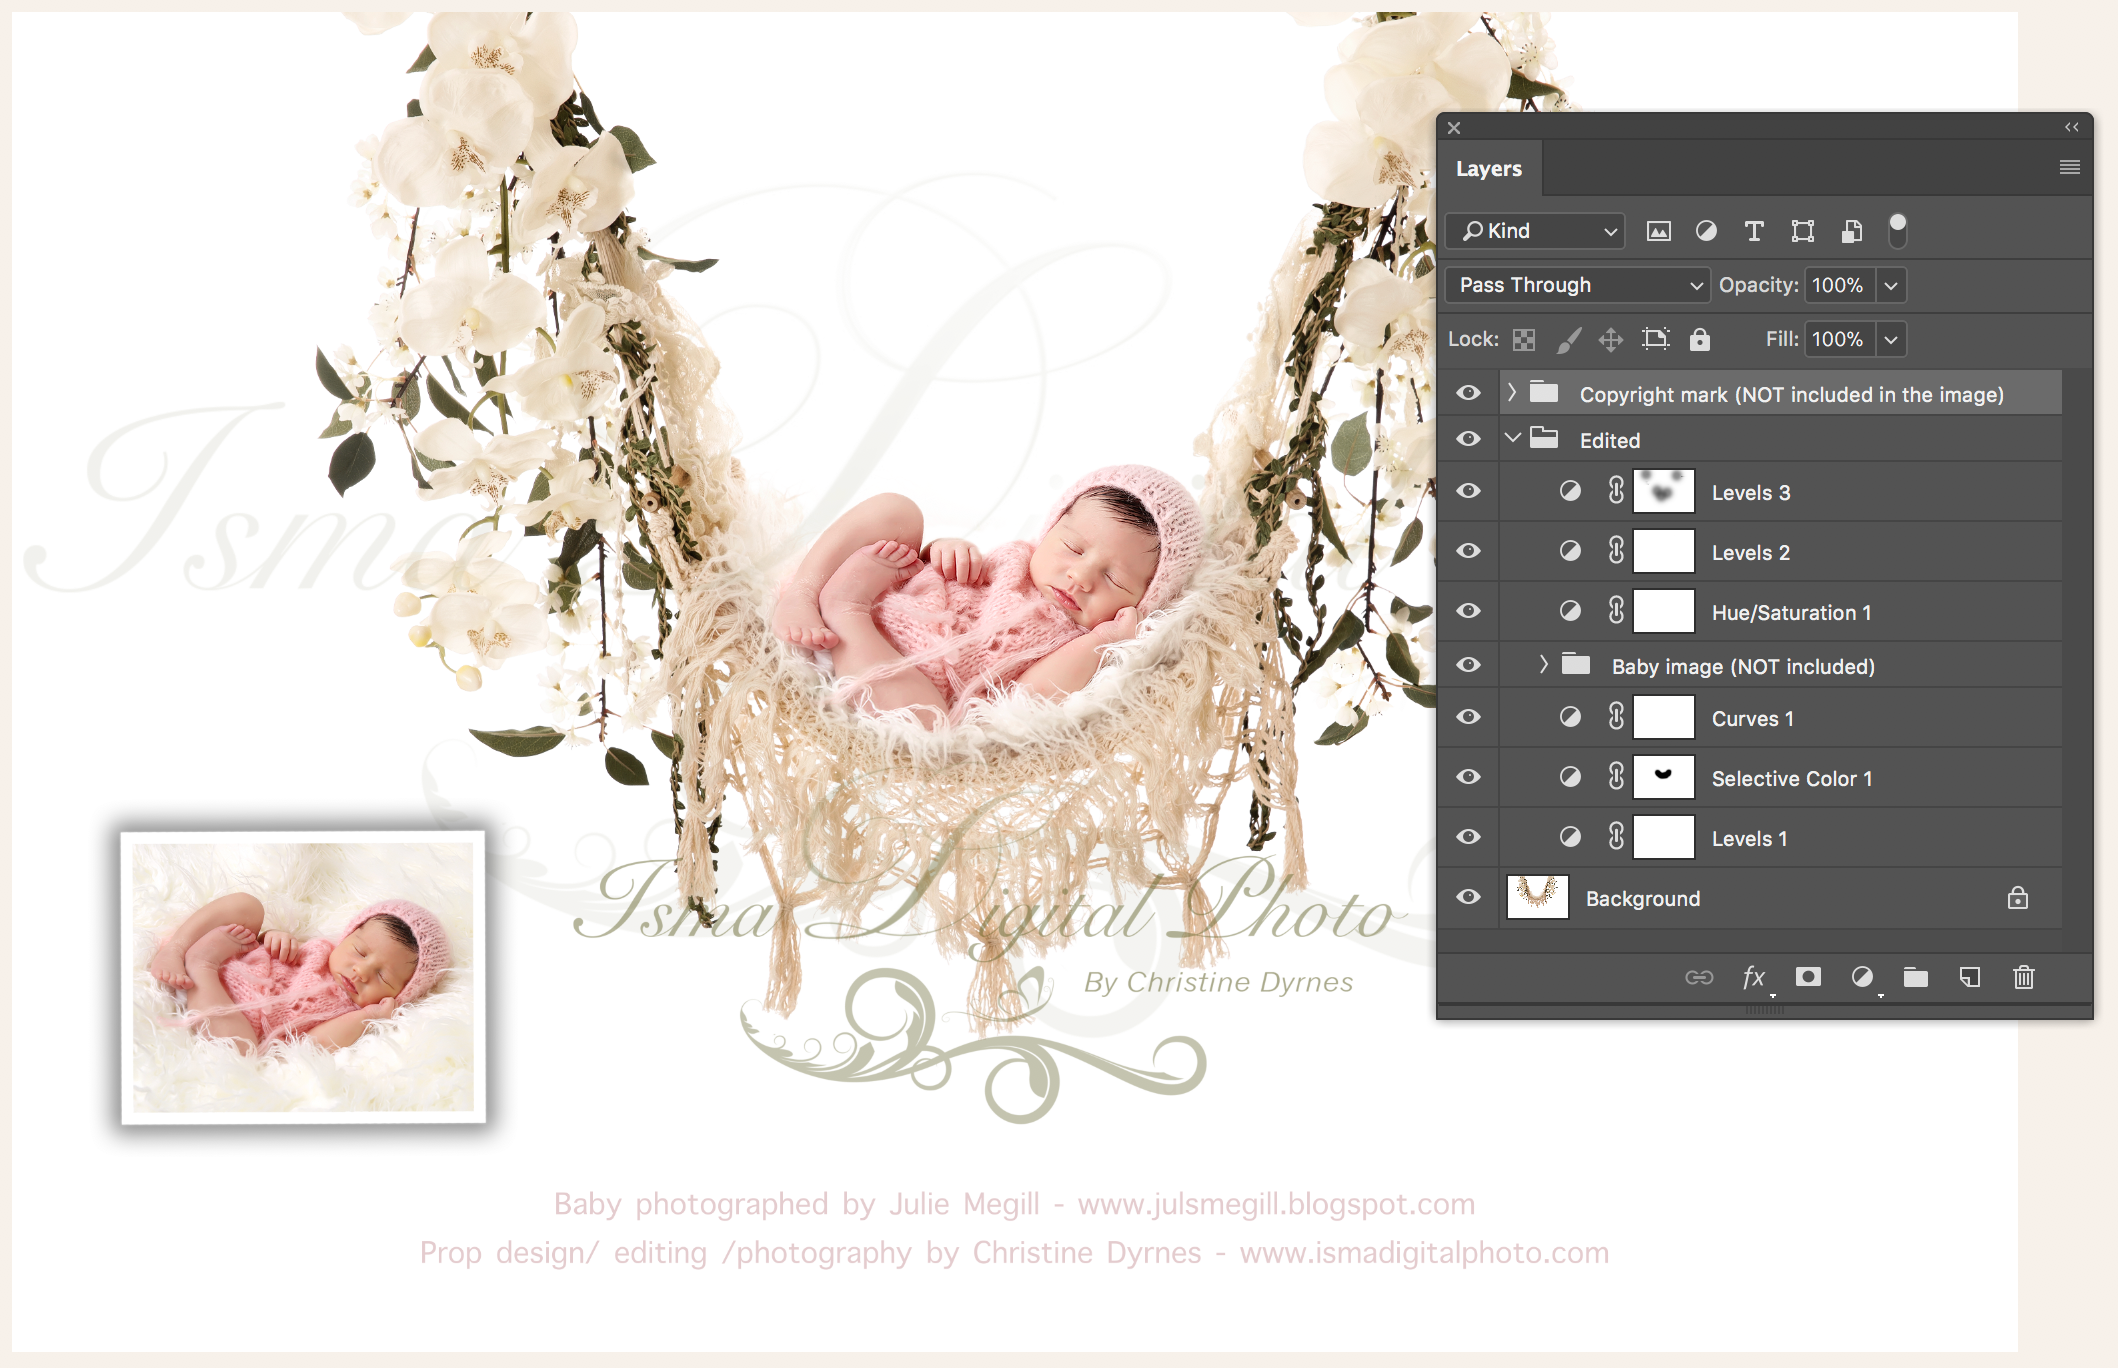 Hammock with pure white background and flowers 2  Digital Photography Backdrop /Props for Newborn Photography - High resolution digital backdrop - One JPG and one PSD file with layers